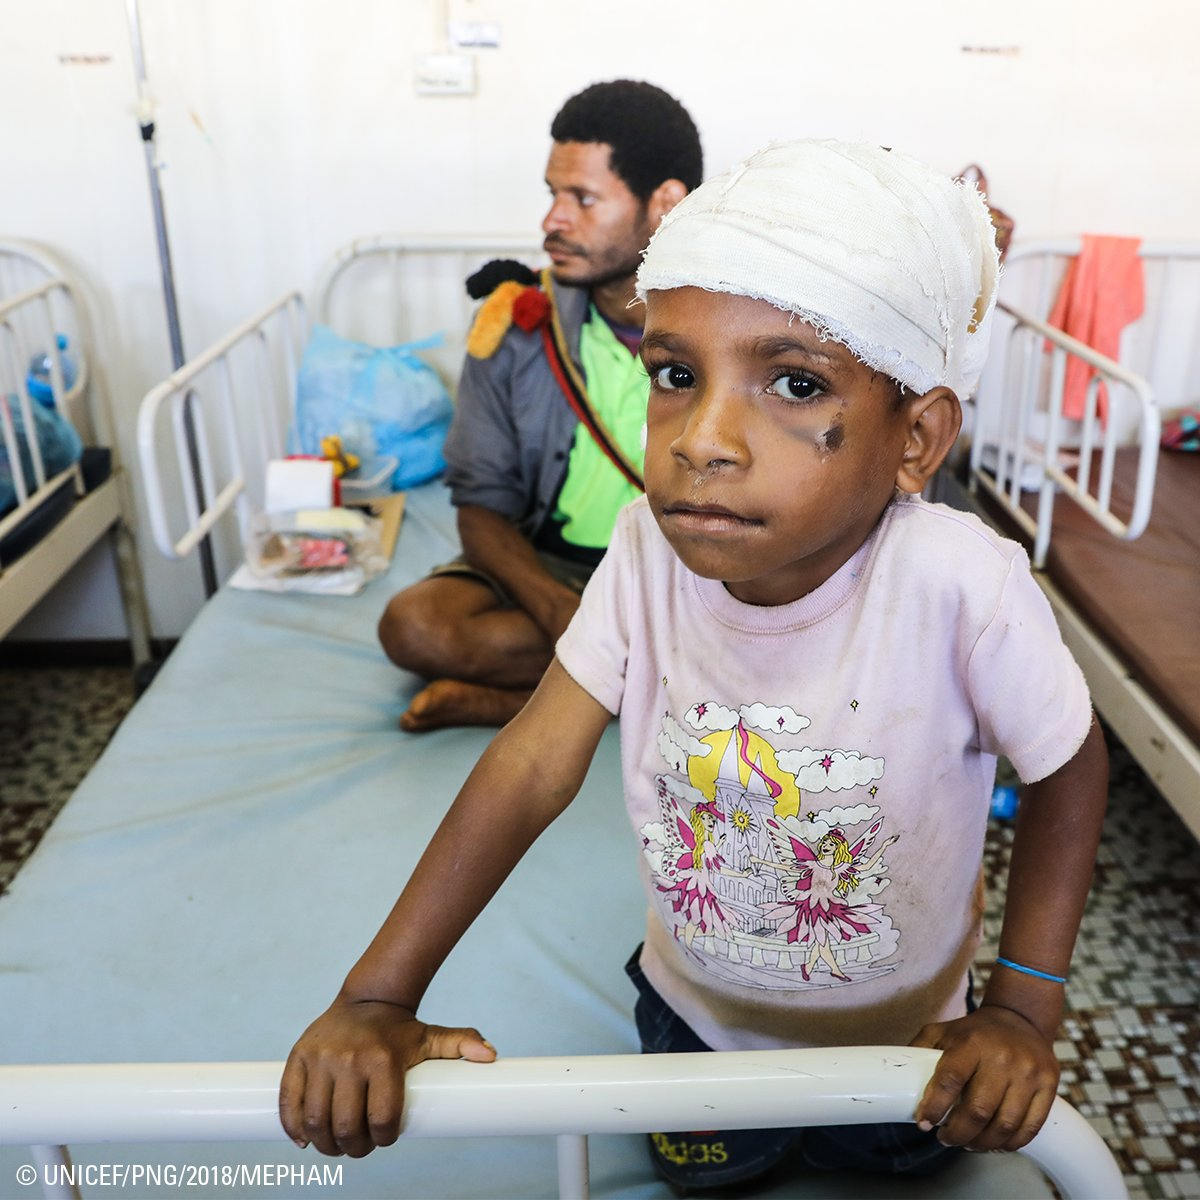 """""""We ran out of the house when the #earthquake came. It was dark, we couldn't see what was happening. The rocks from a landslide hit him on the head but he is very lucky to be alive."""" - Kevox remembers the moment when massive #PNG earthquake injured 5-year-old Douglas. #UNICEF"""